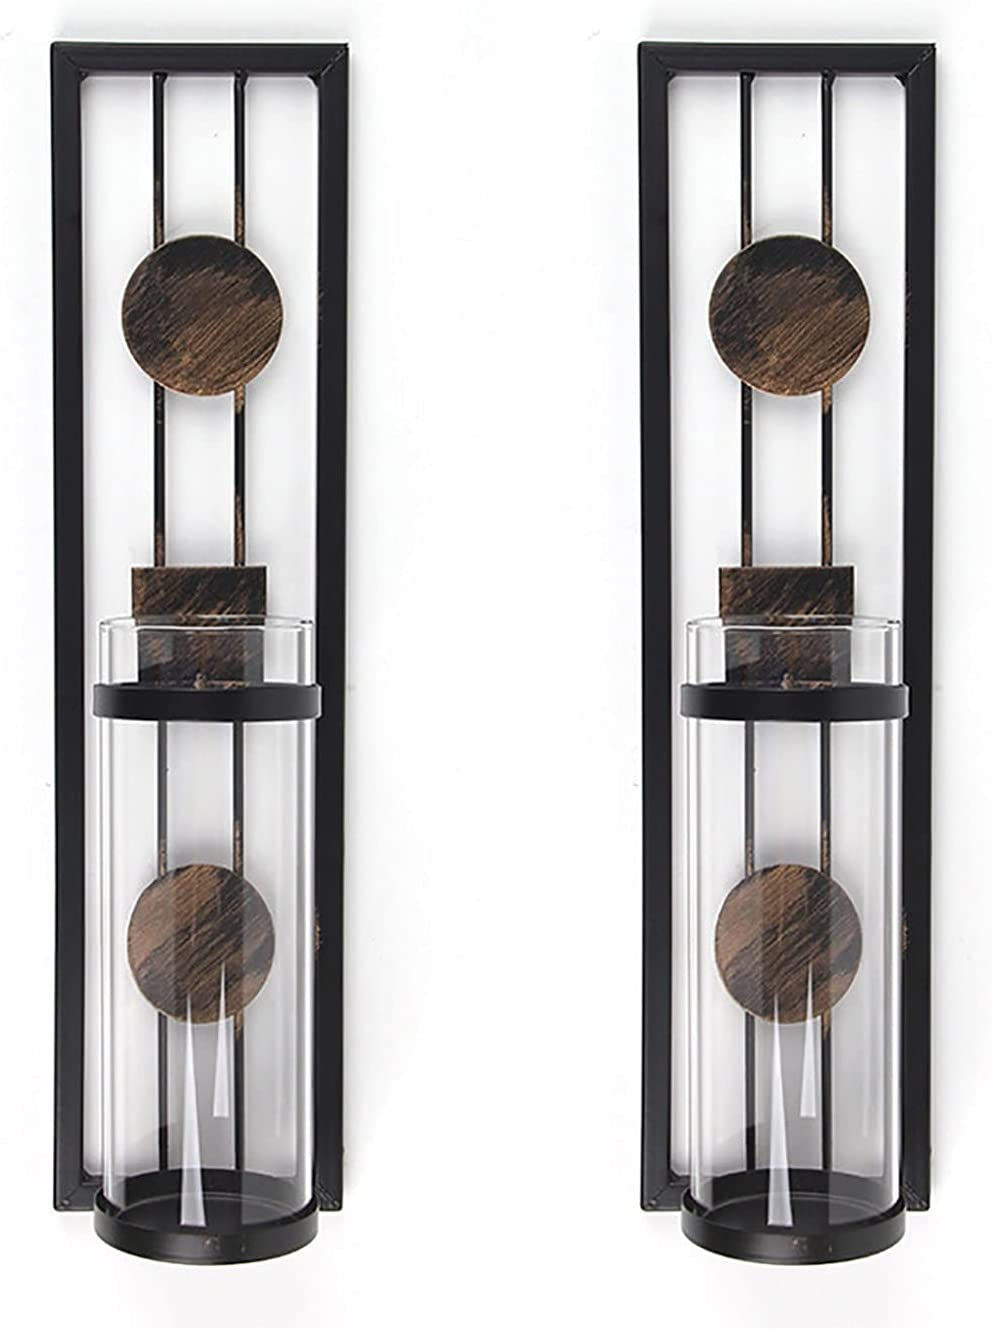 Max 70% OFF ZXCVBNM Wall Candle Holder Metal Ranking TOP13 -Style Scon Décor